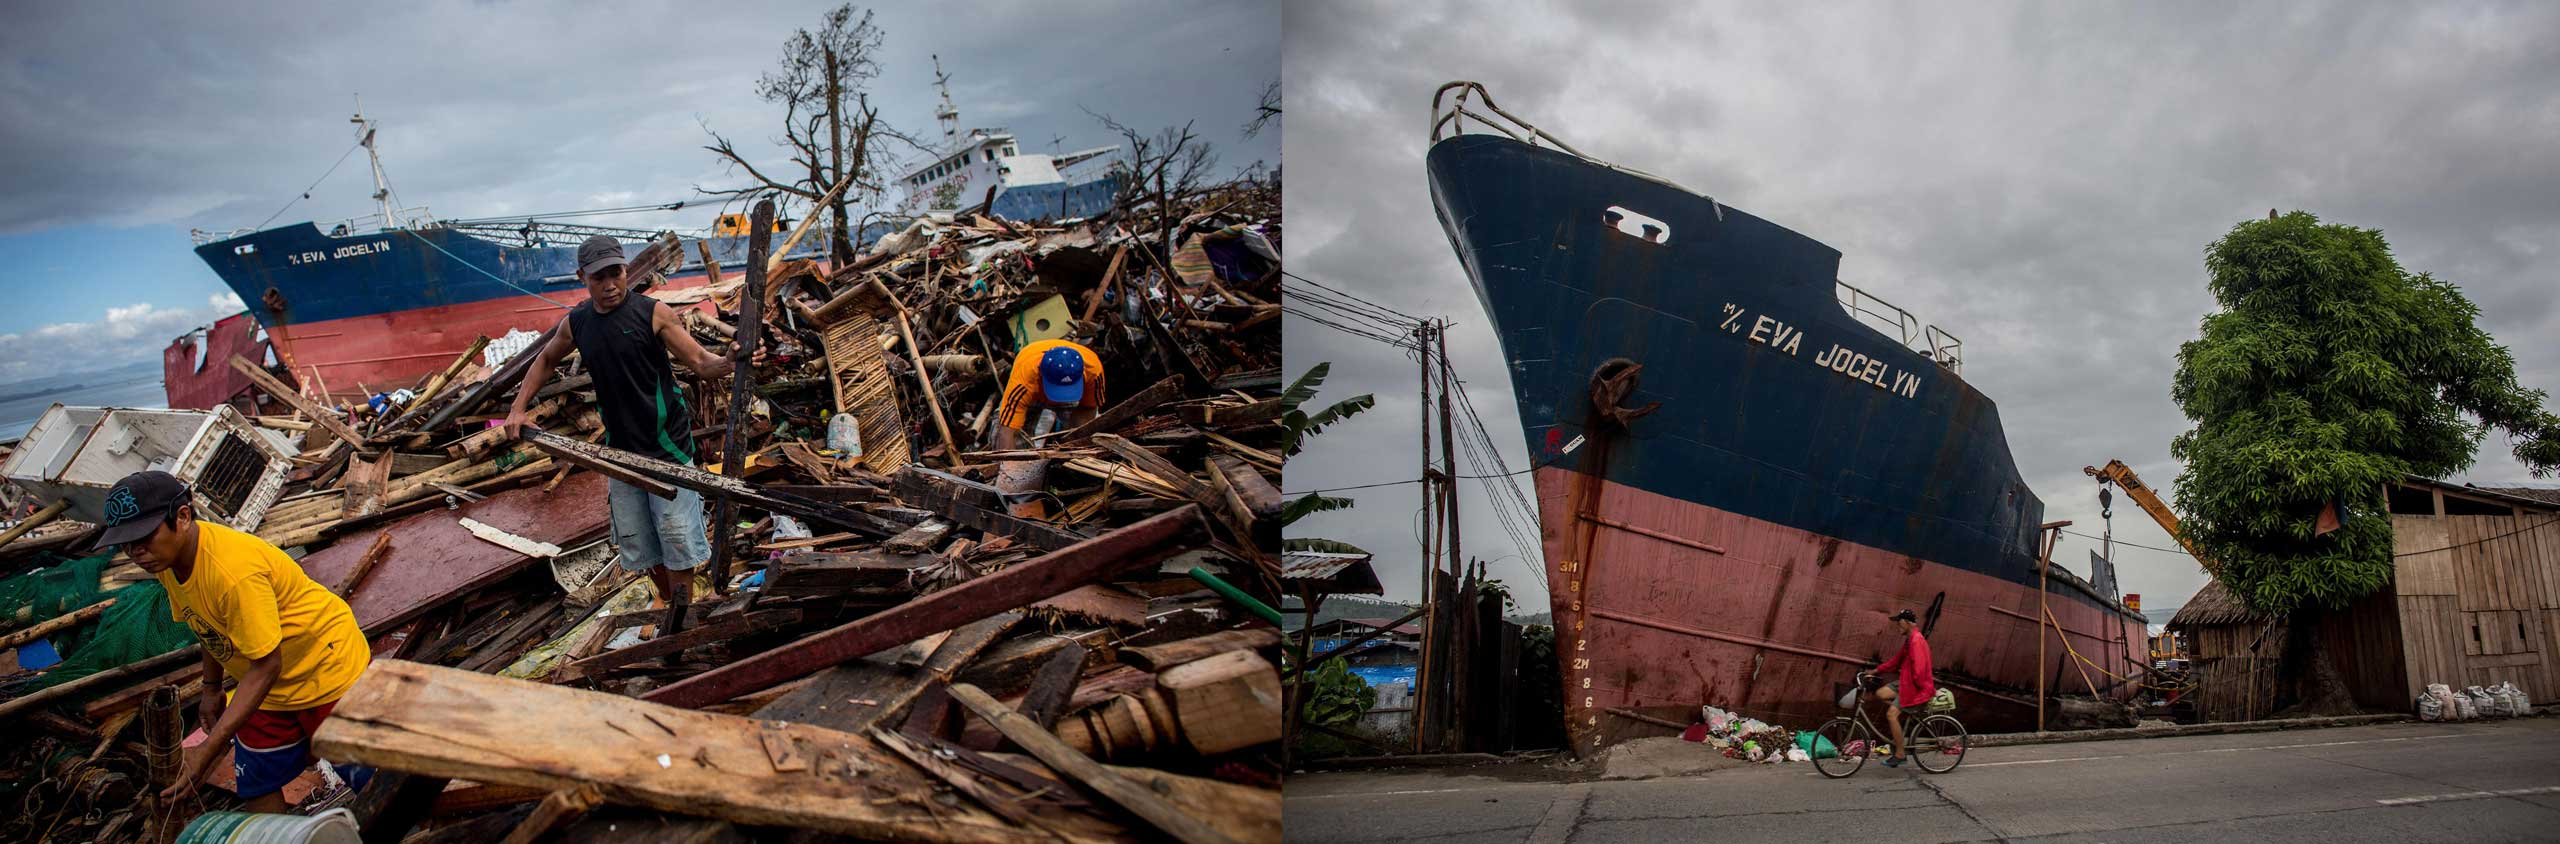 Before: Residents clear debris away following the recent super typhoon on Nov. 17, 2013 in Leyte, Philippines. After: View of the main road in Anibong district one year after Typhoon Haiyan on Nov. 3, 2014.